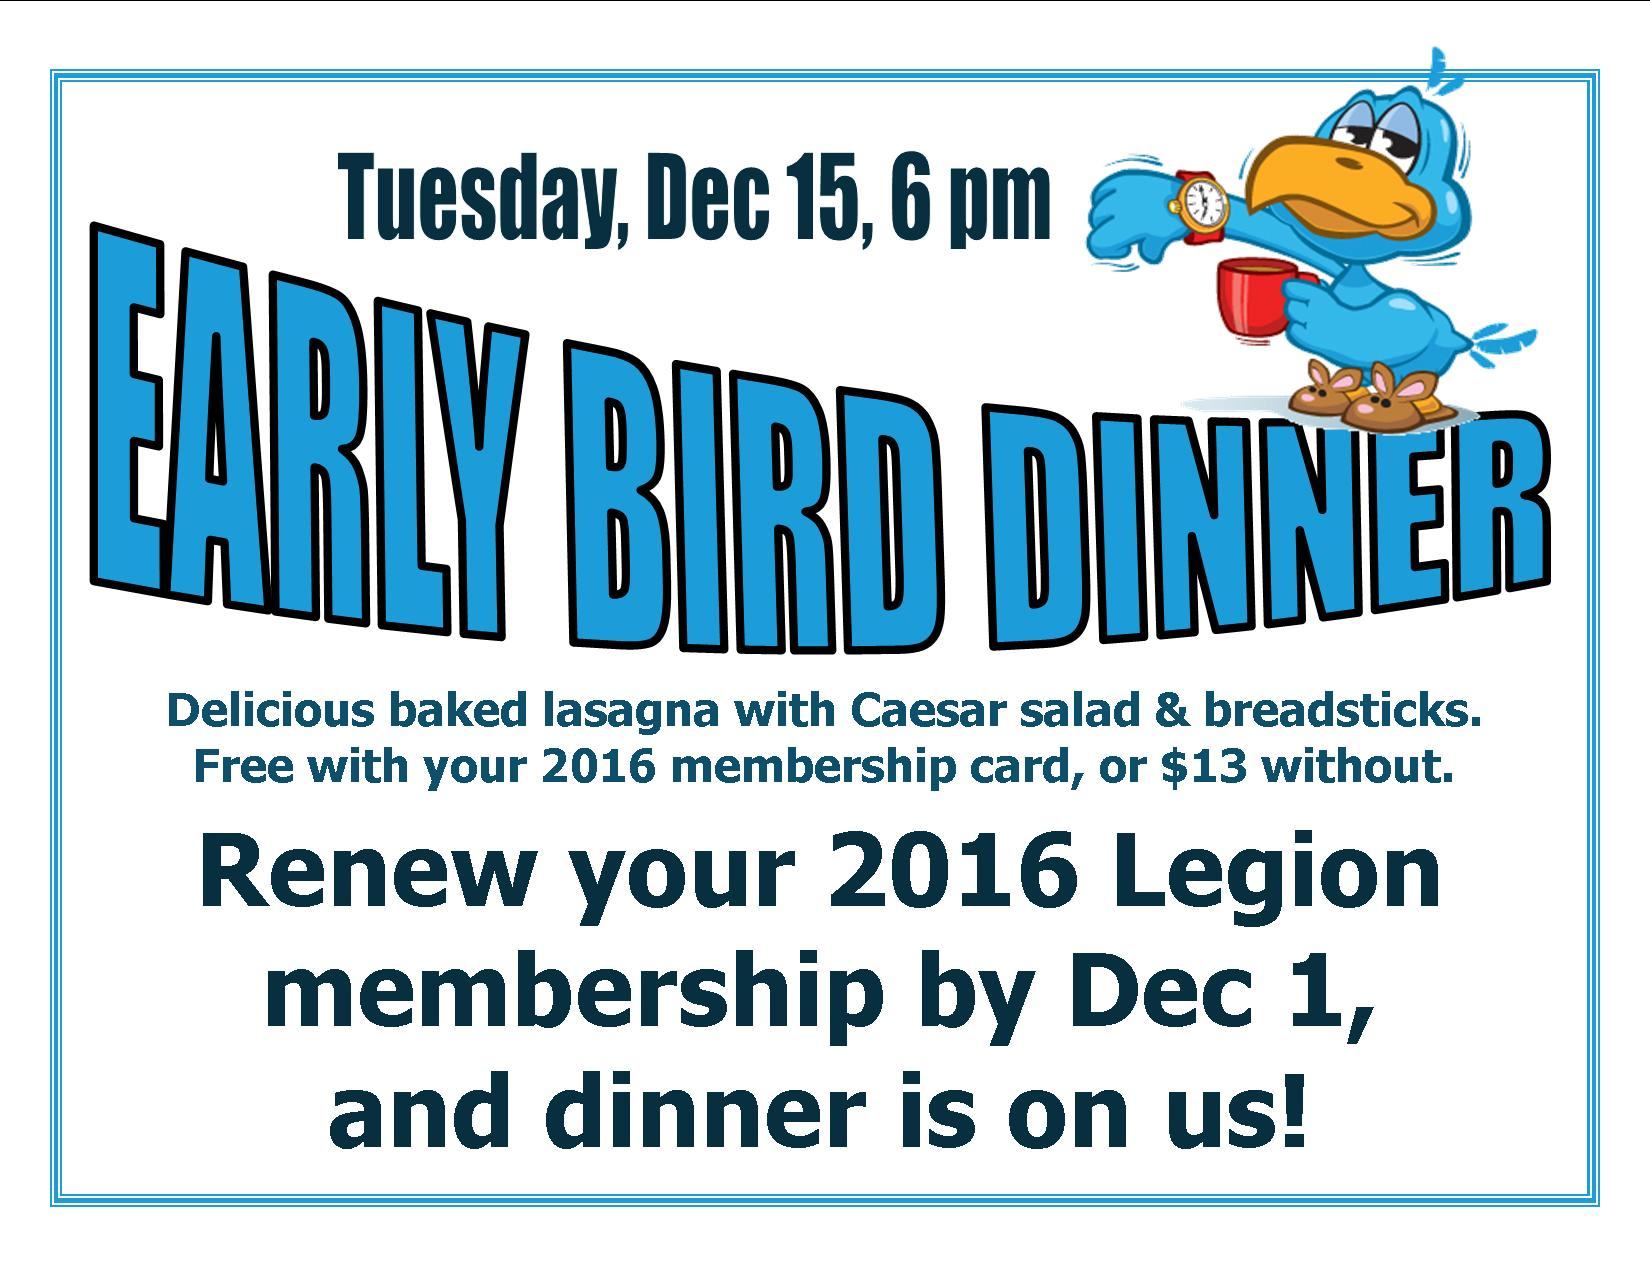 early bird dinner | American Legion Post 44, Scottsdale Arizona